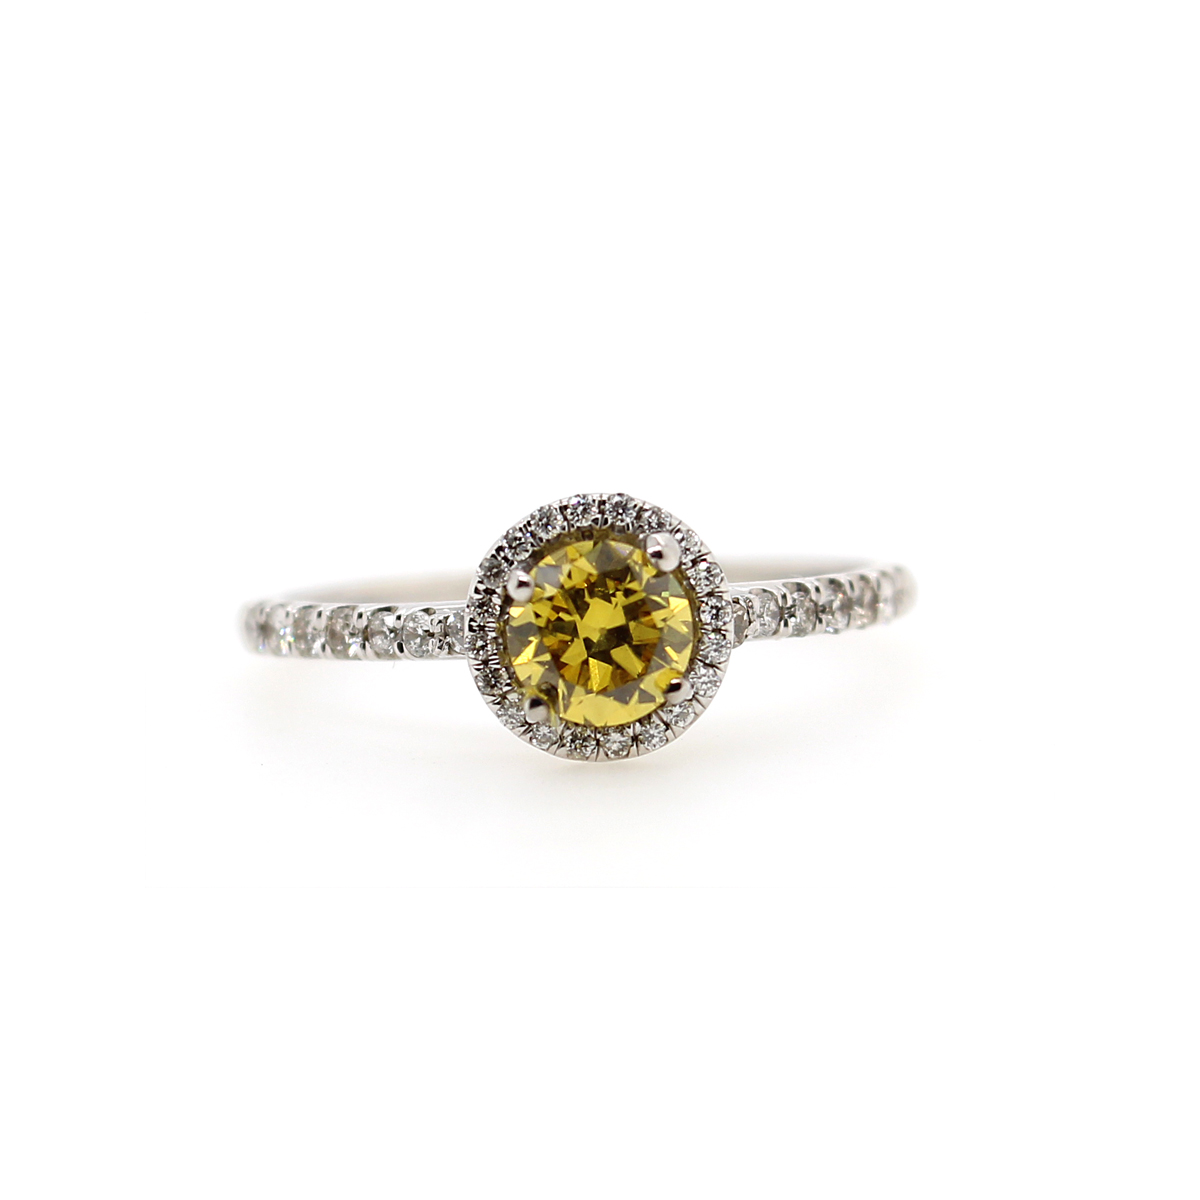 Vintage 14 Karat White Gold Natural Fancy Yellow Diamond Halo Ring